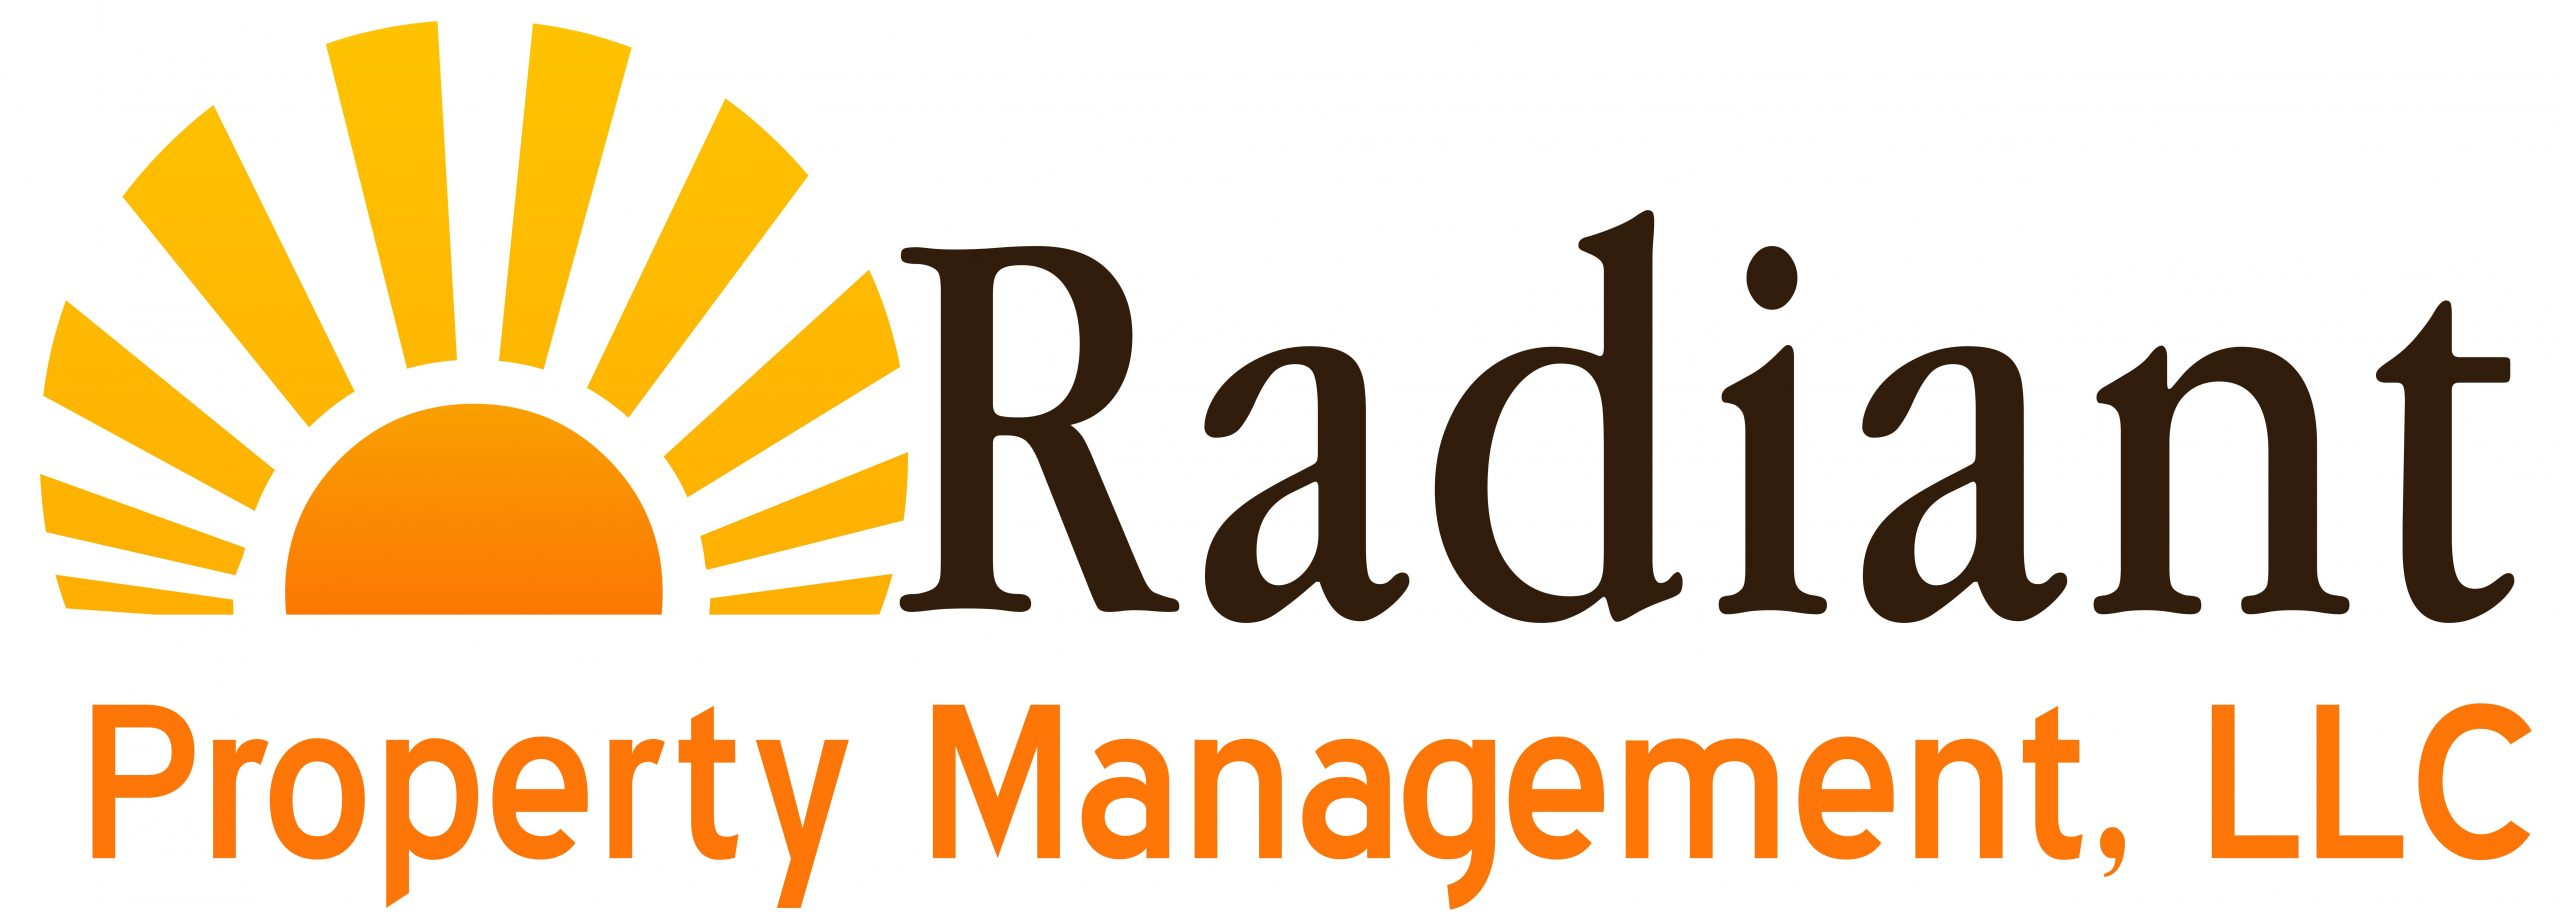 Radiant Property Management